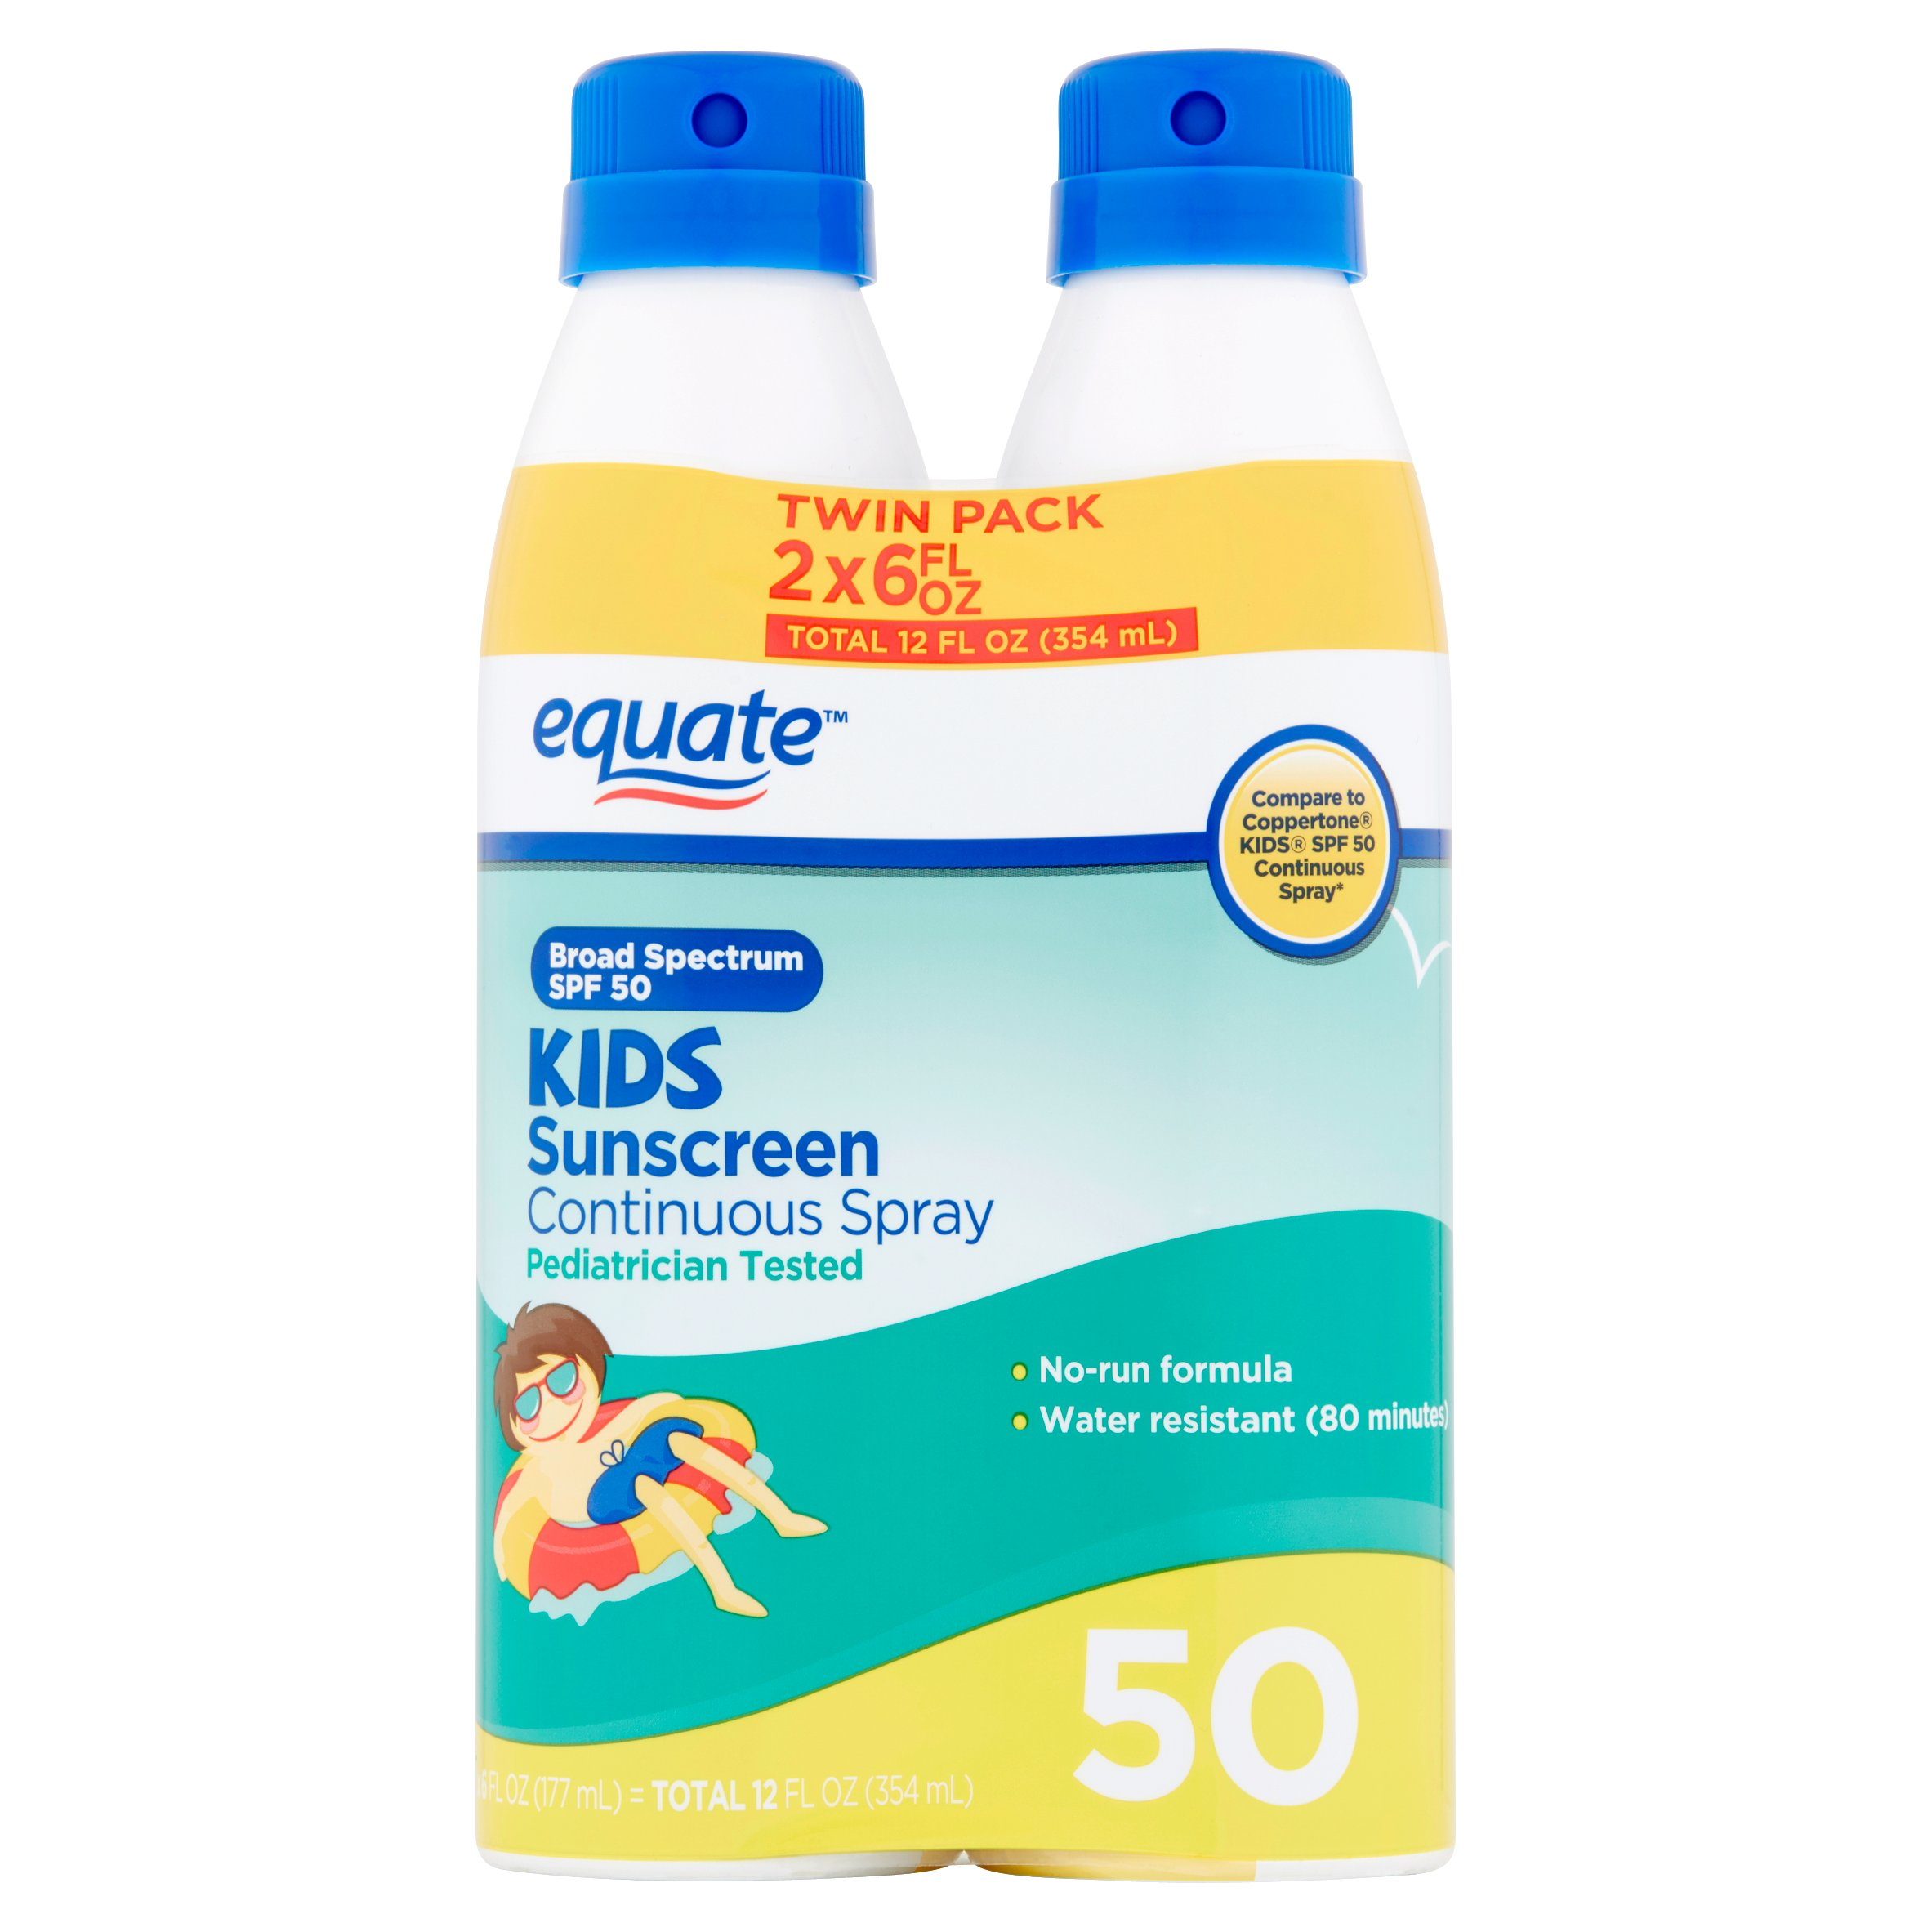 Equate Kids Sunscreen Continuous Spray Broad Spectrum, SPF 50, 6 Fl Oz, 2 Pk